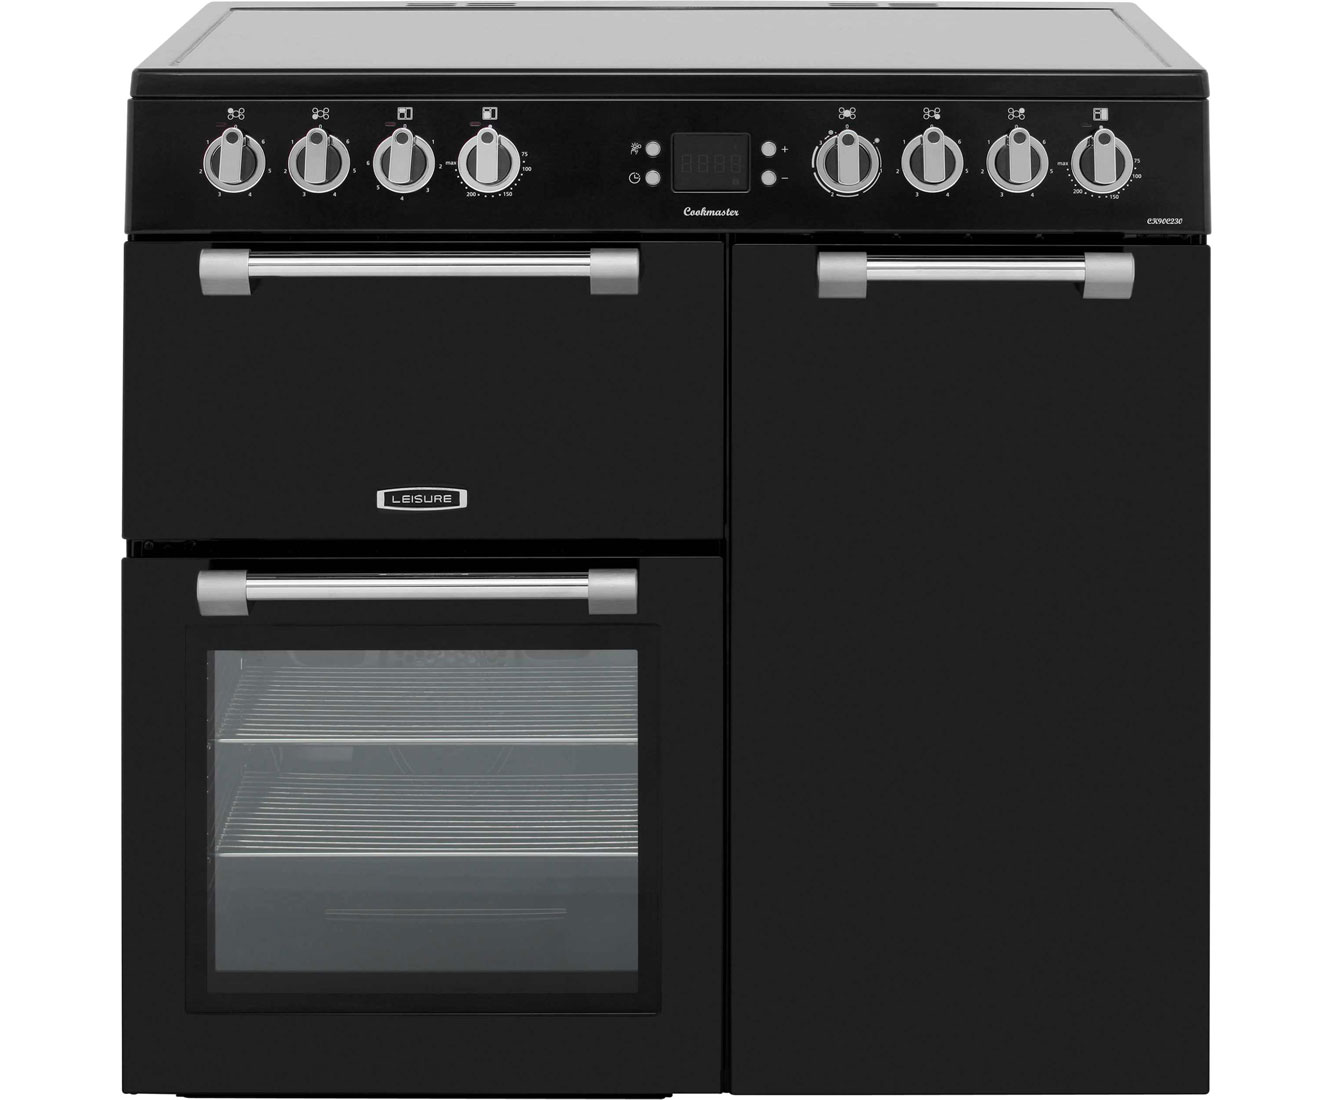 Leisure 90cm electric range cooker